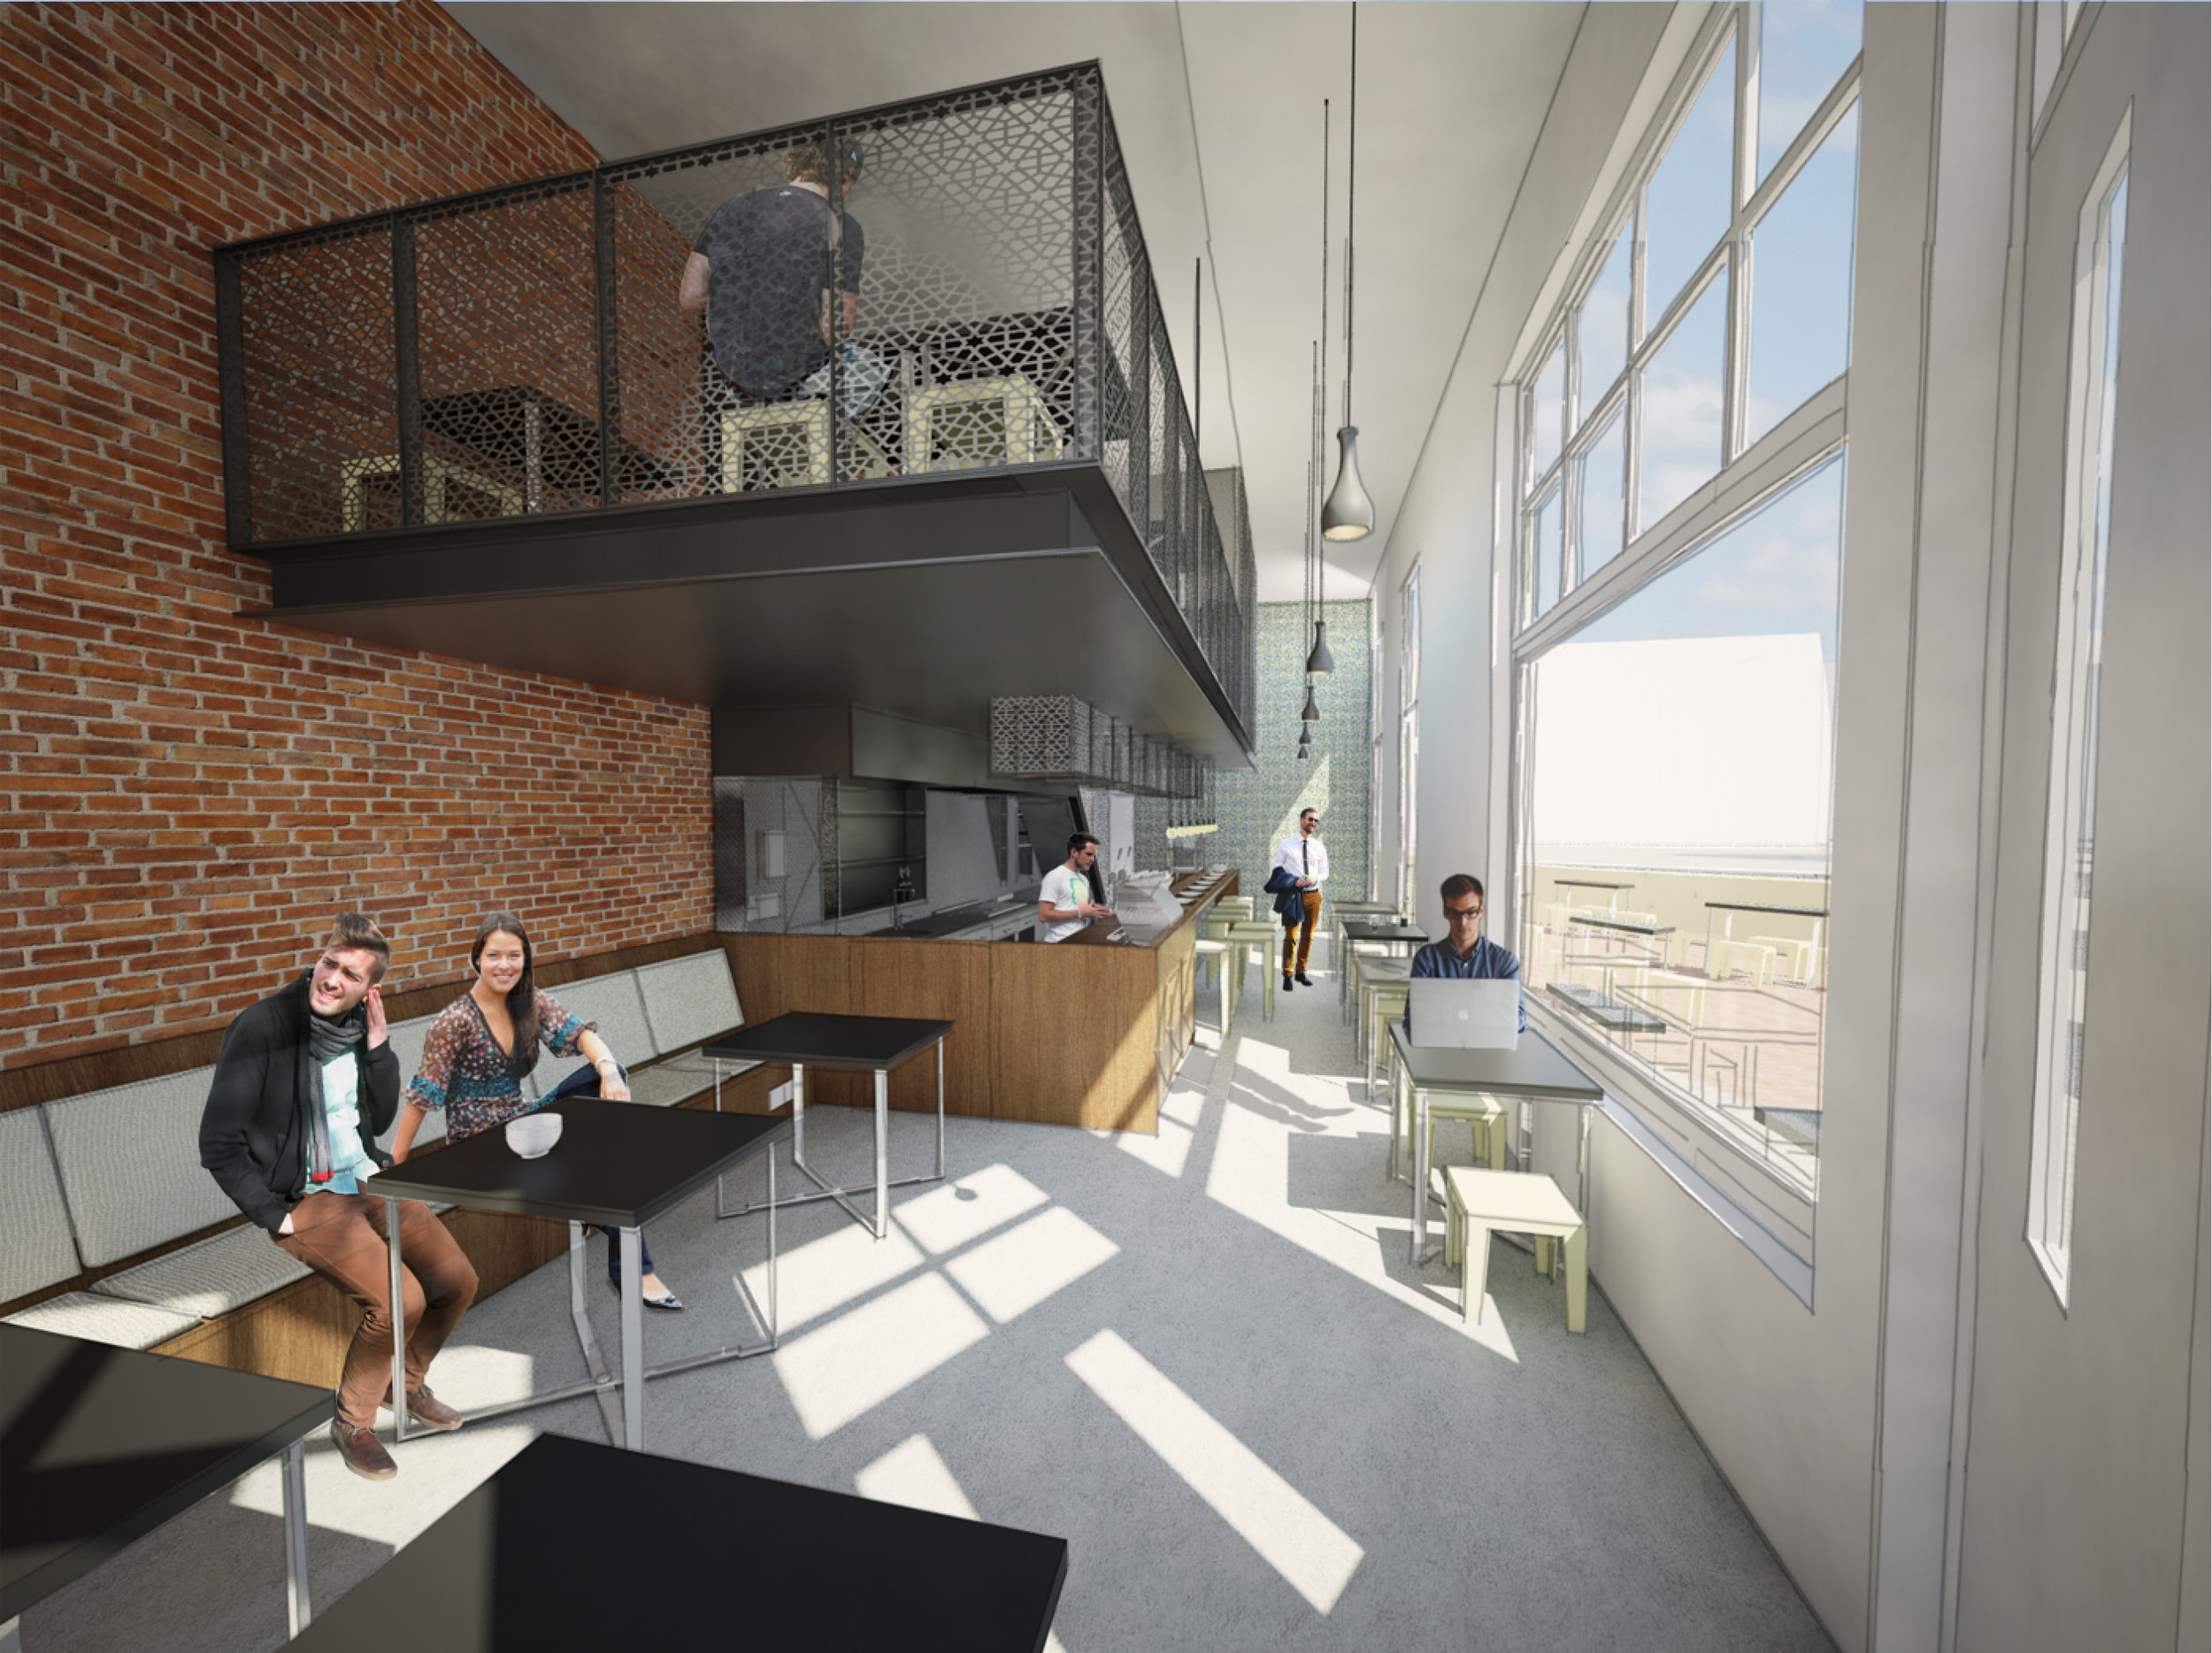 artist impression of the café showing the mezzanine hoovering over the bar area with the small kitchen